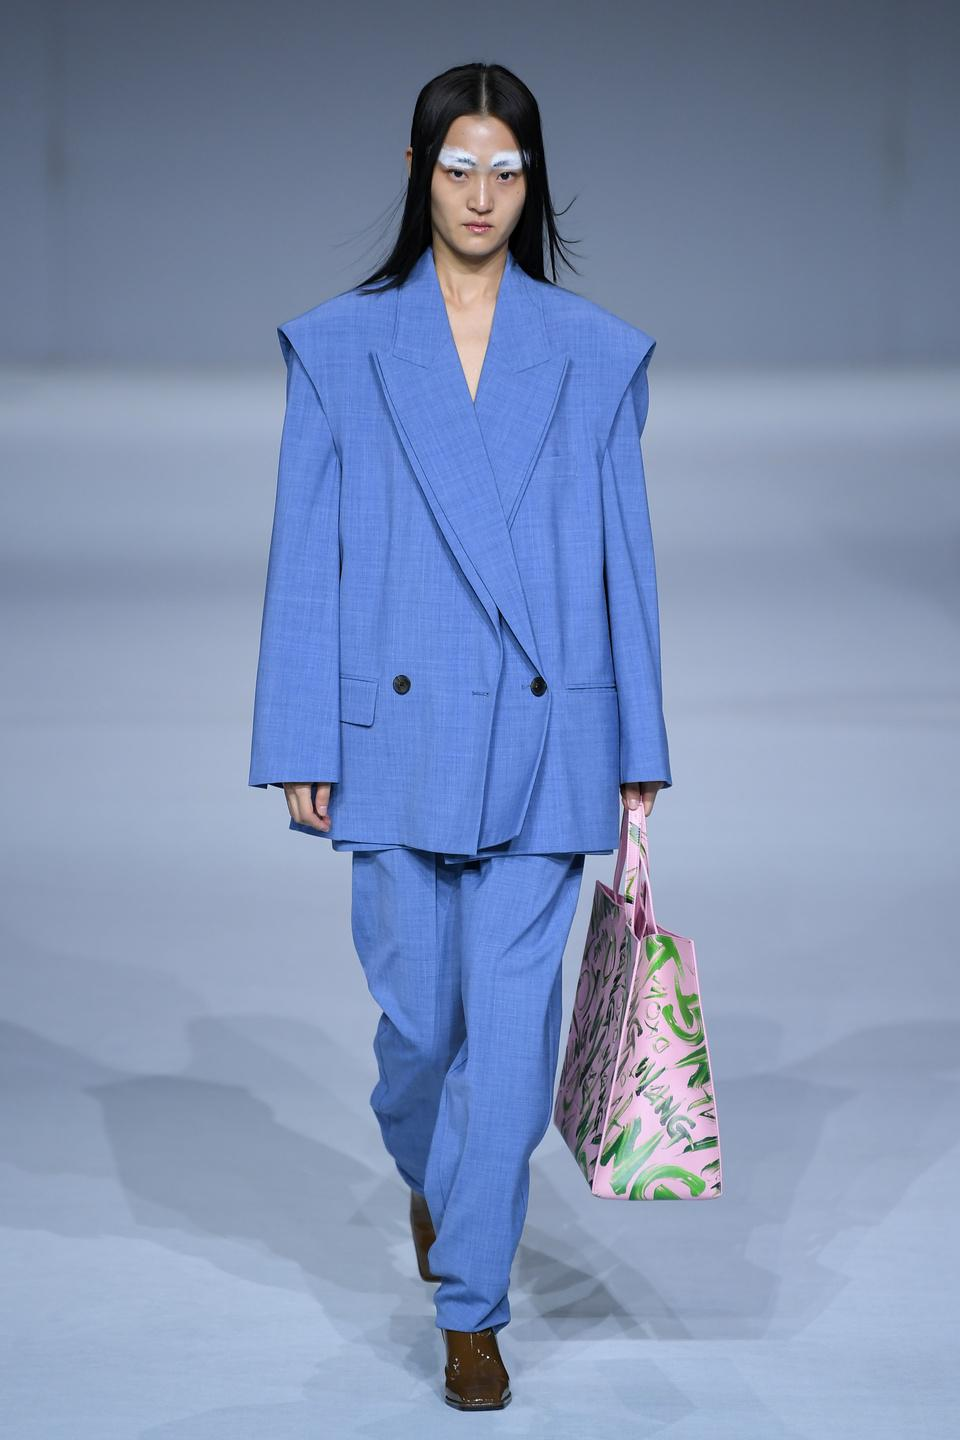 China Fashion Week 2021 S/S Collection - Day 4